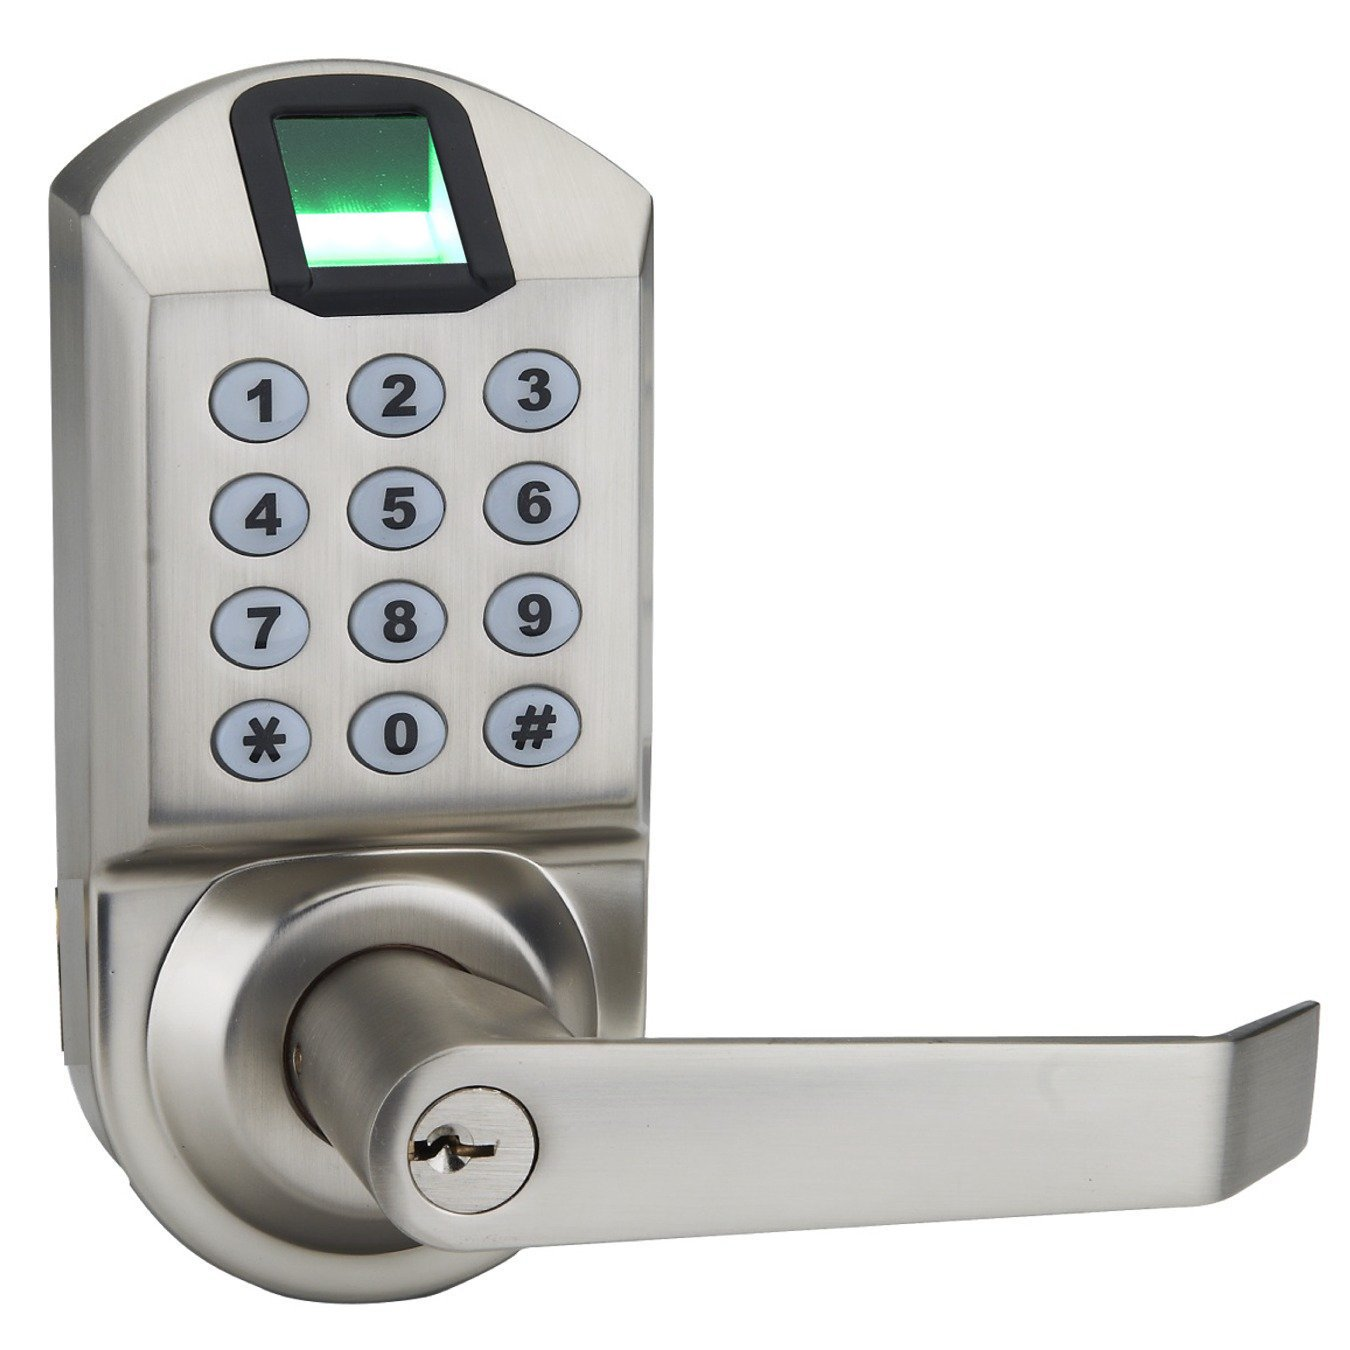 Ardwolf A1 No Drills Needed Keyless Keypad Biometric Fingerprint Door Lock, Unlock with Fingerprint Key Password - Satin Nickel by Ardwolf